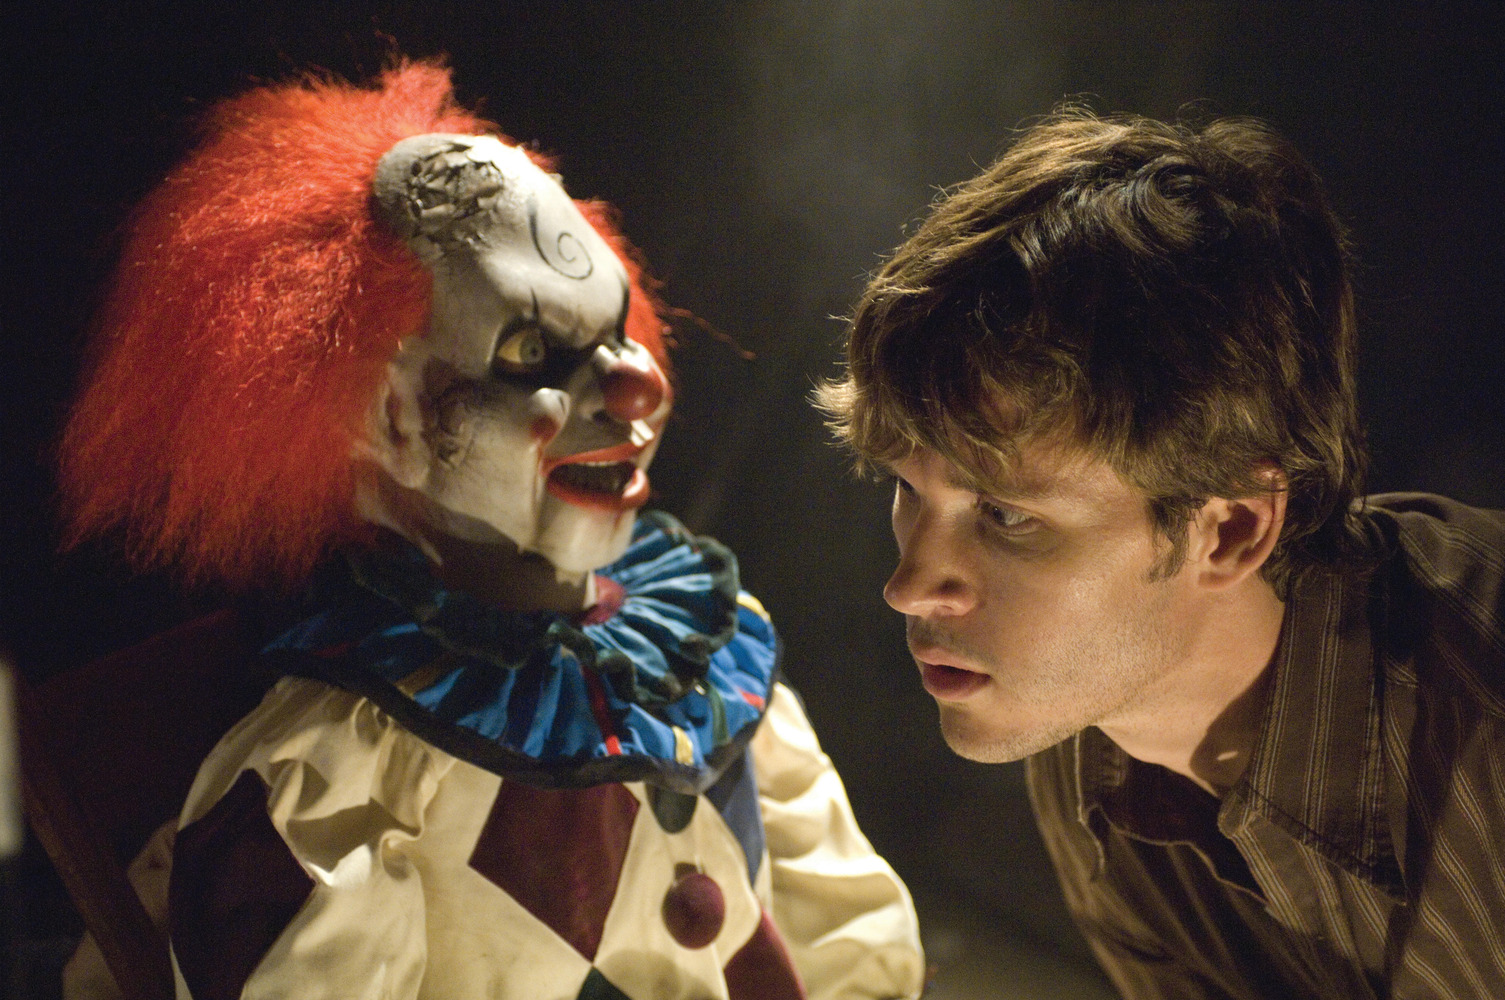 Ryan Kwanten encounters creepy clown doll in Dead Silence (2007)